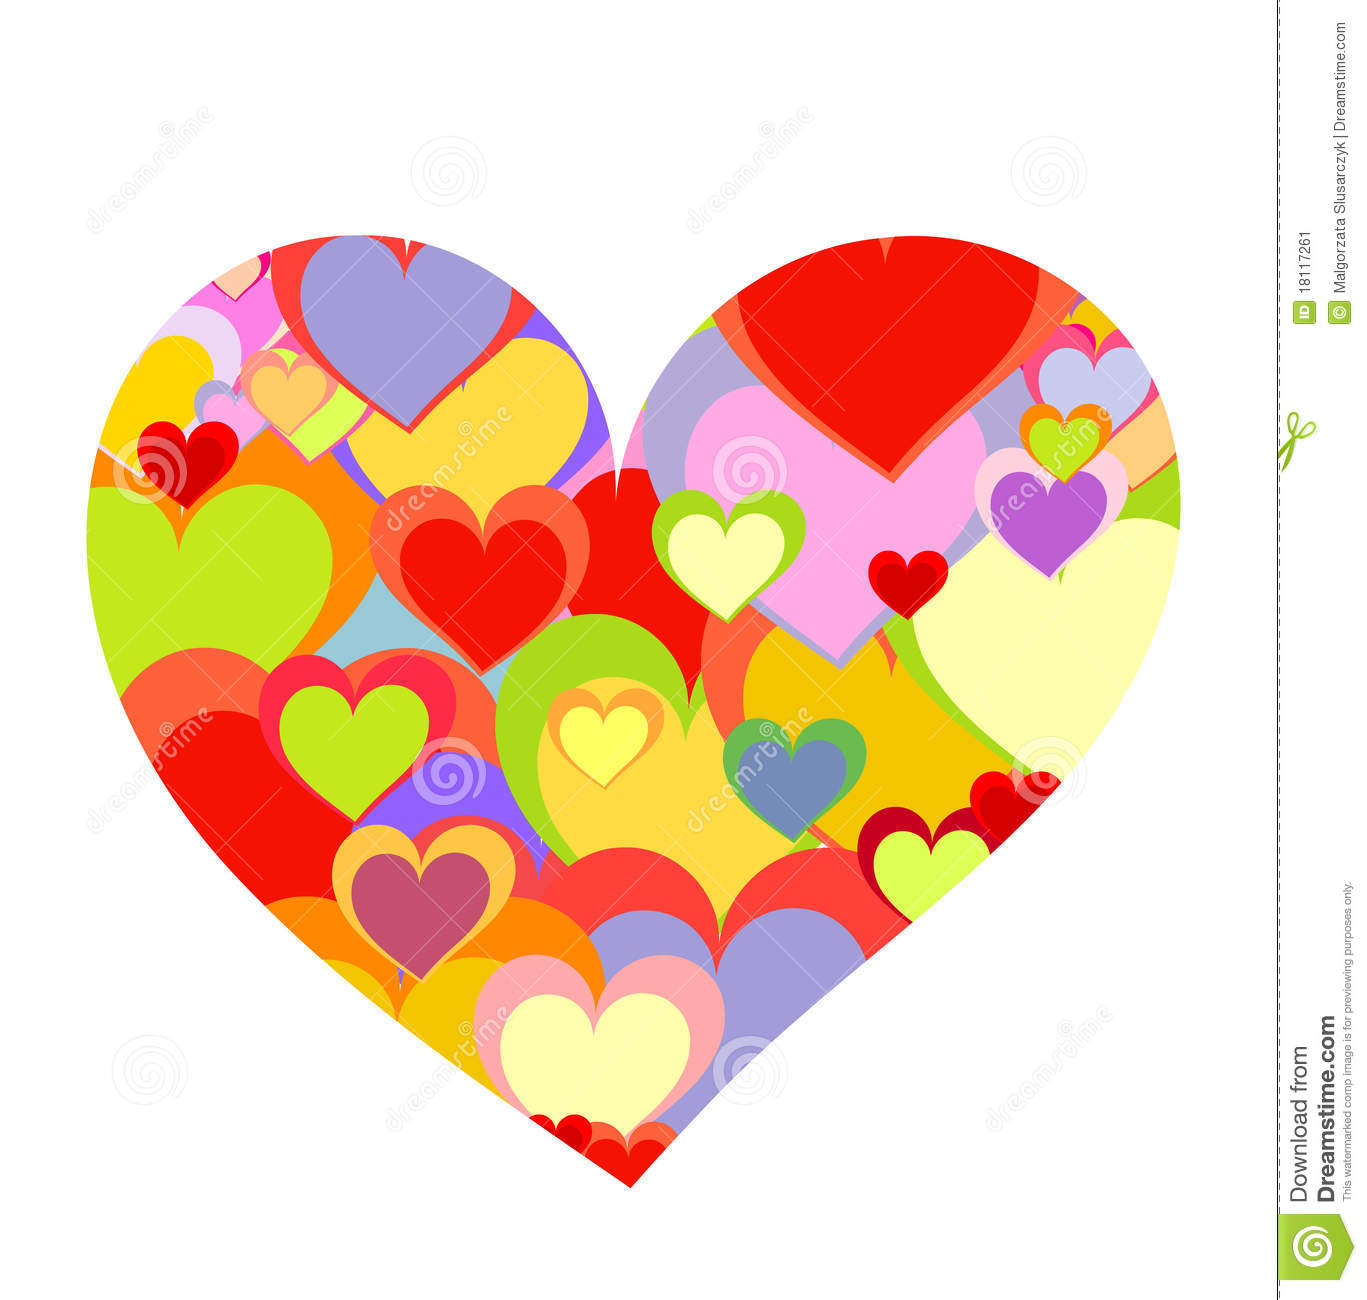 Colorful Heart Stock Image - Image: 18117261